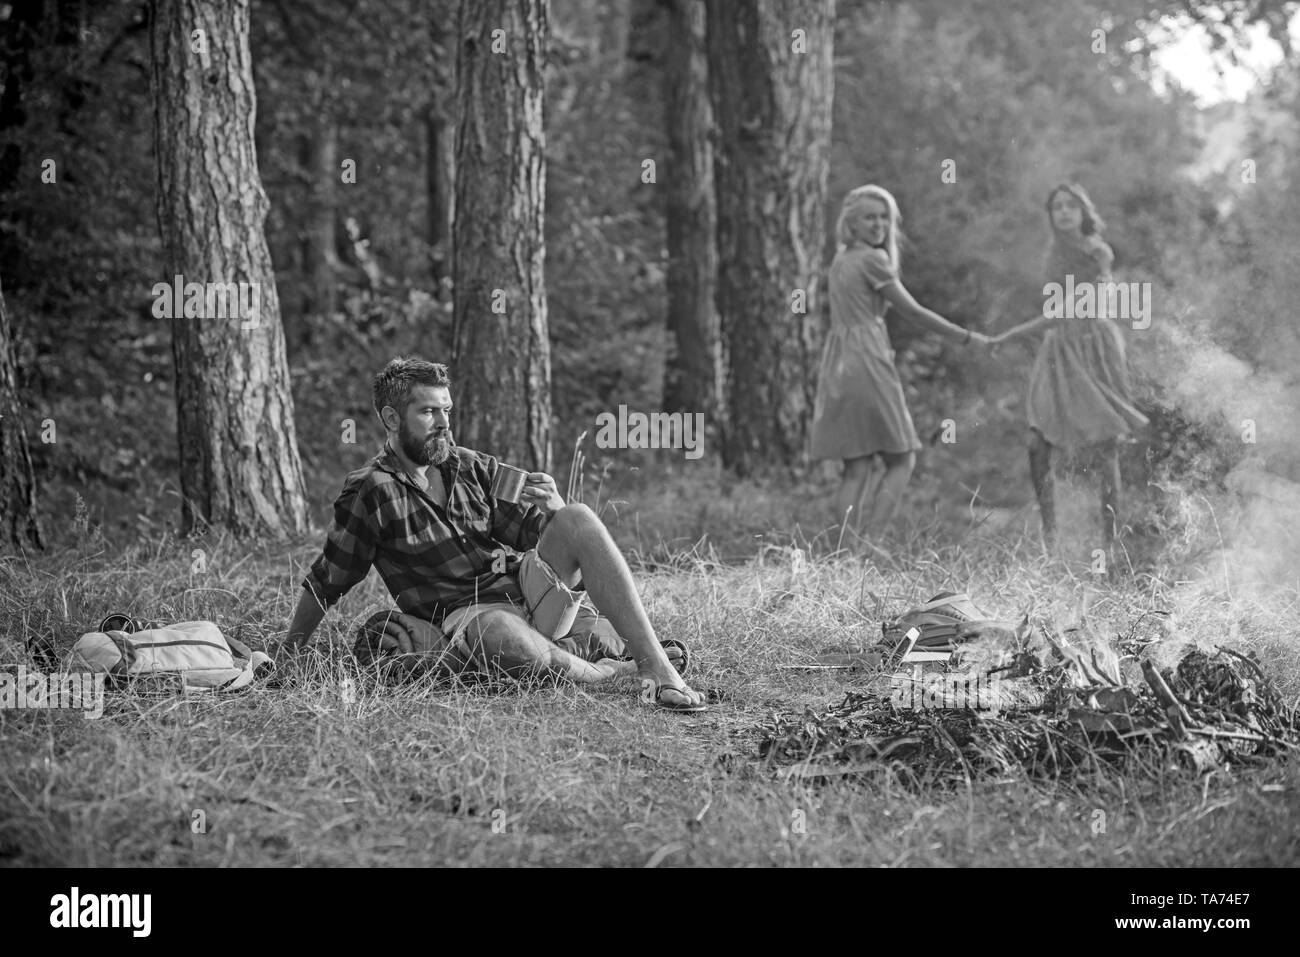 Bearded man drink tea or coffee at bonfire with women on blurred background. Bearded man sit at campfire - Stock Image